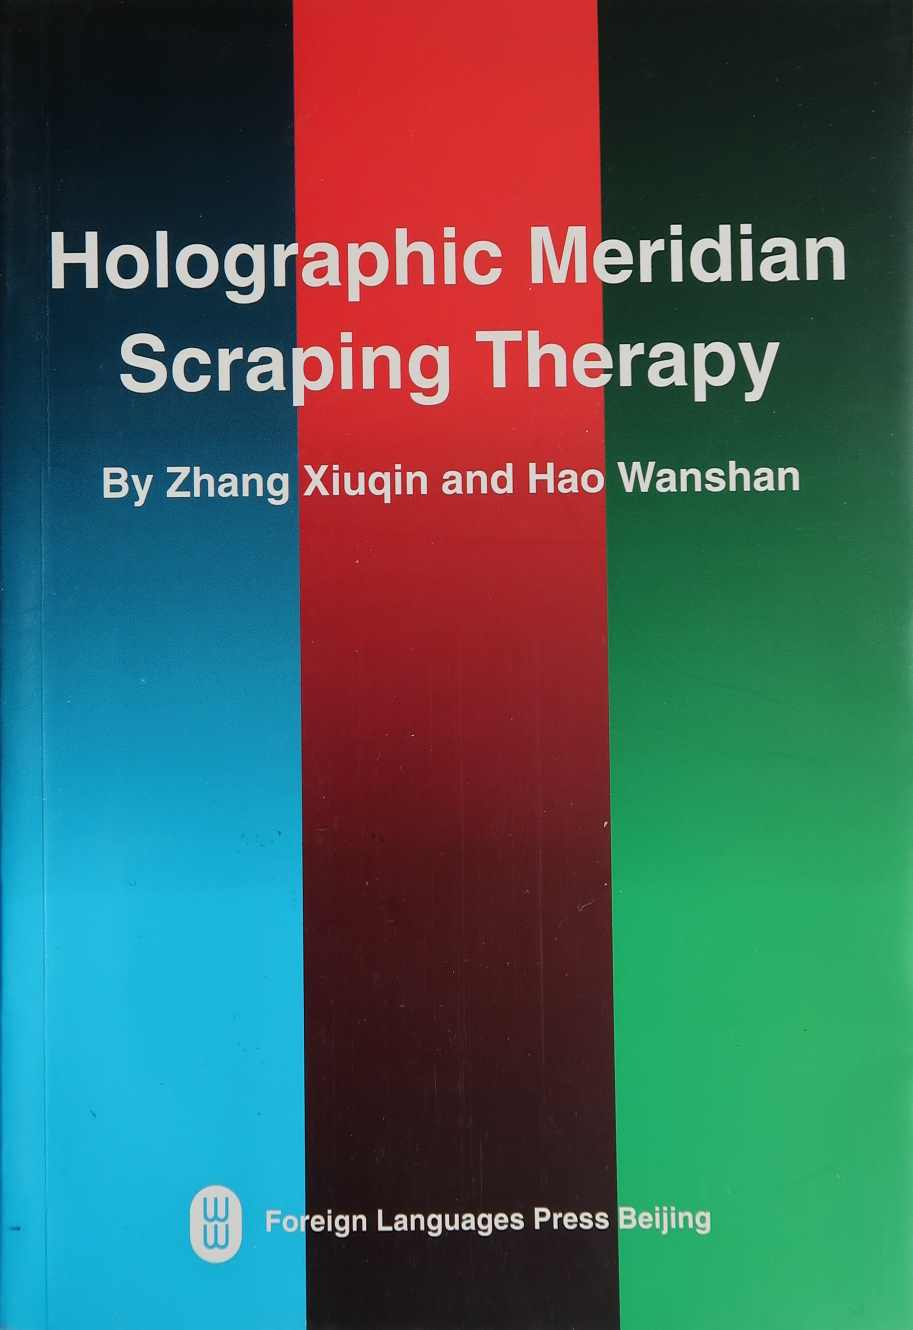 Holographic Meridian Scraping Therapy by Zhang Xiuqin and Hao Wanshan, new, english